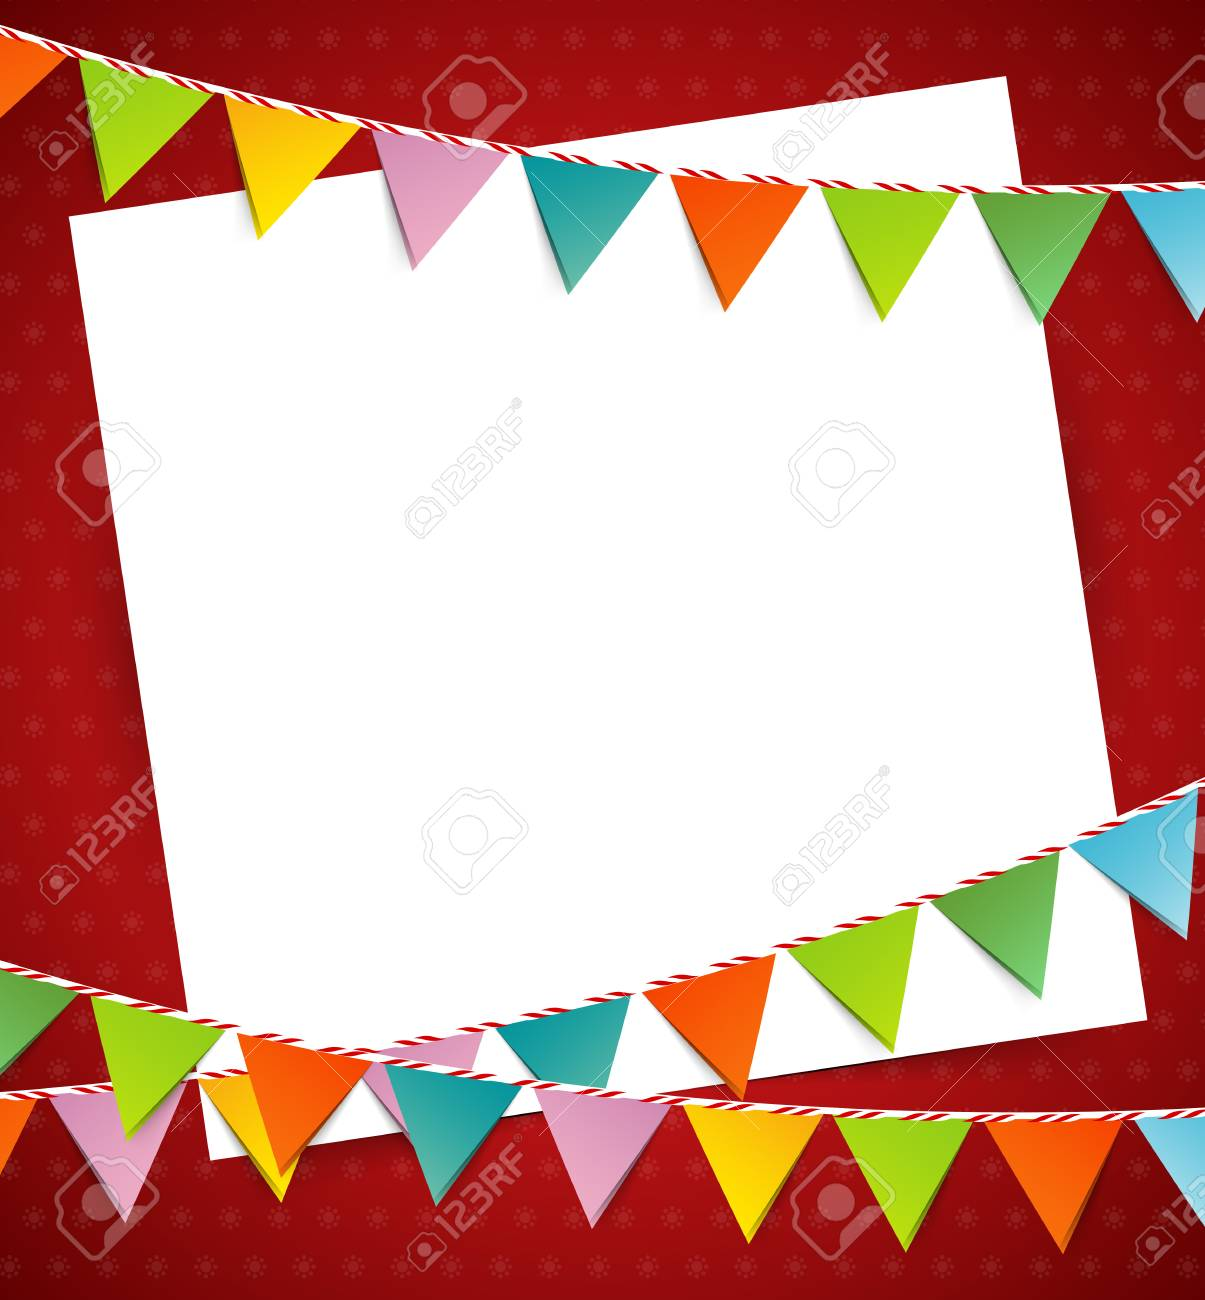 Bunting party color flags - 32009021